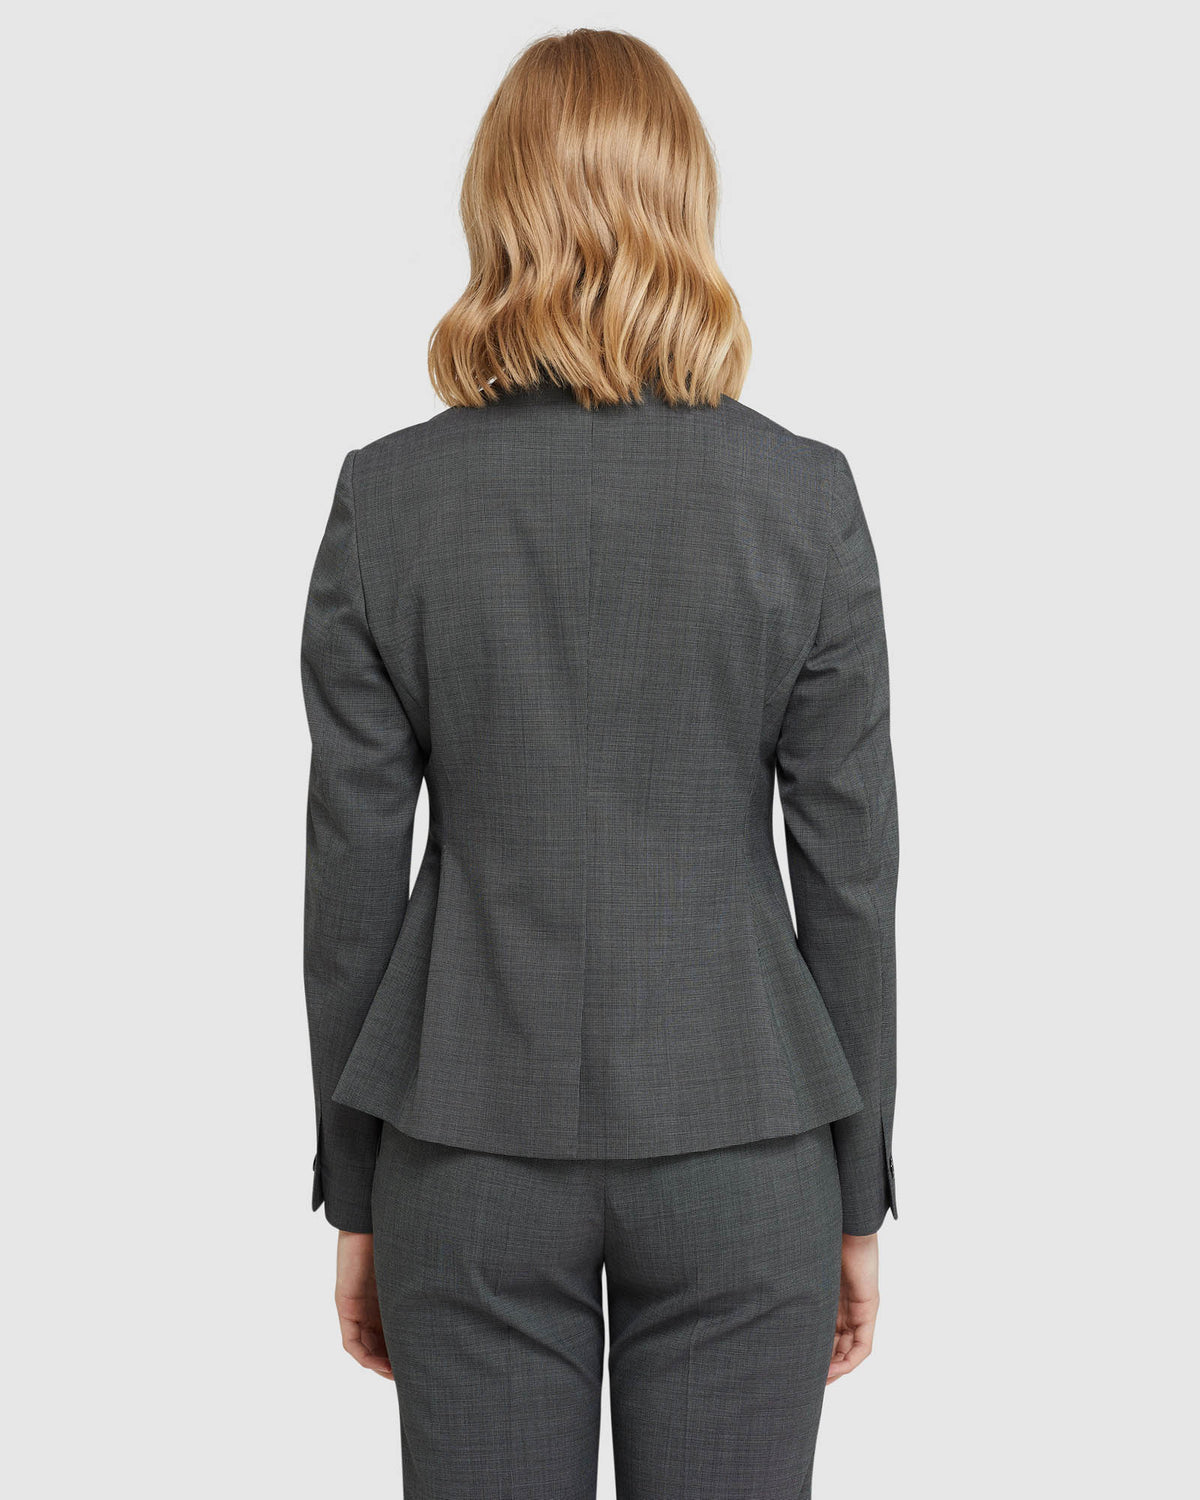 CHICA WOOL STRETCH SUIT JACKET CHARCOAL